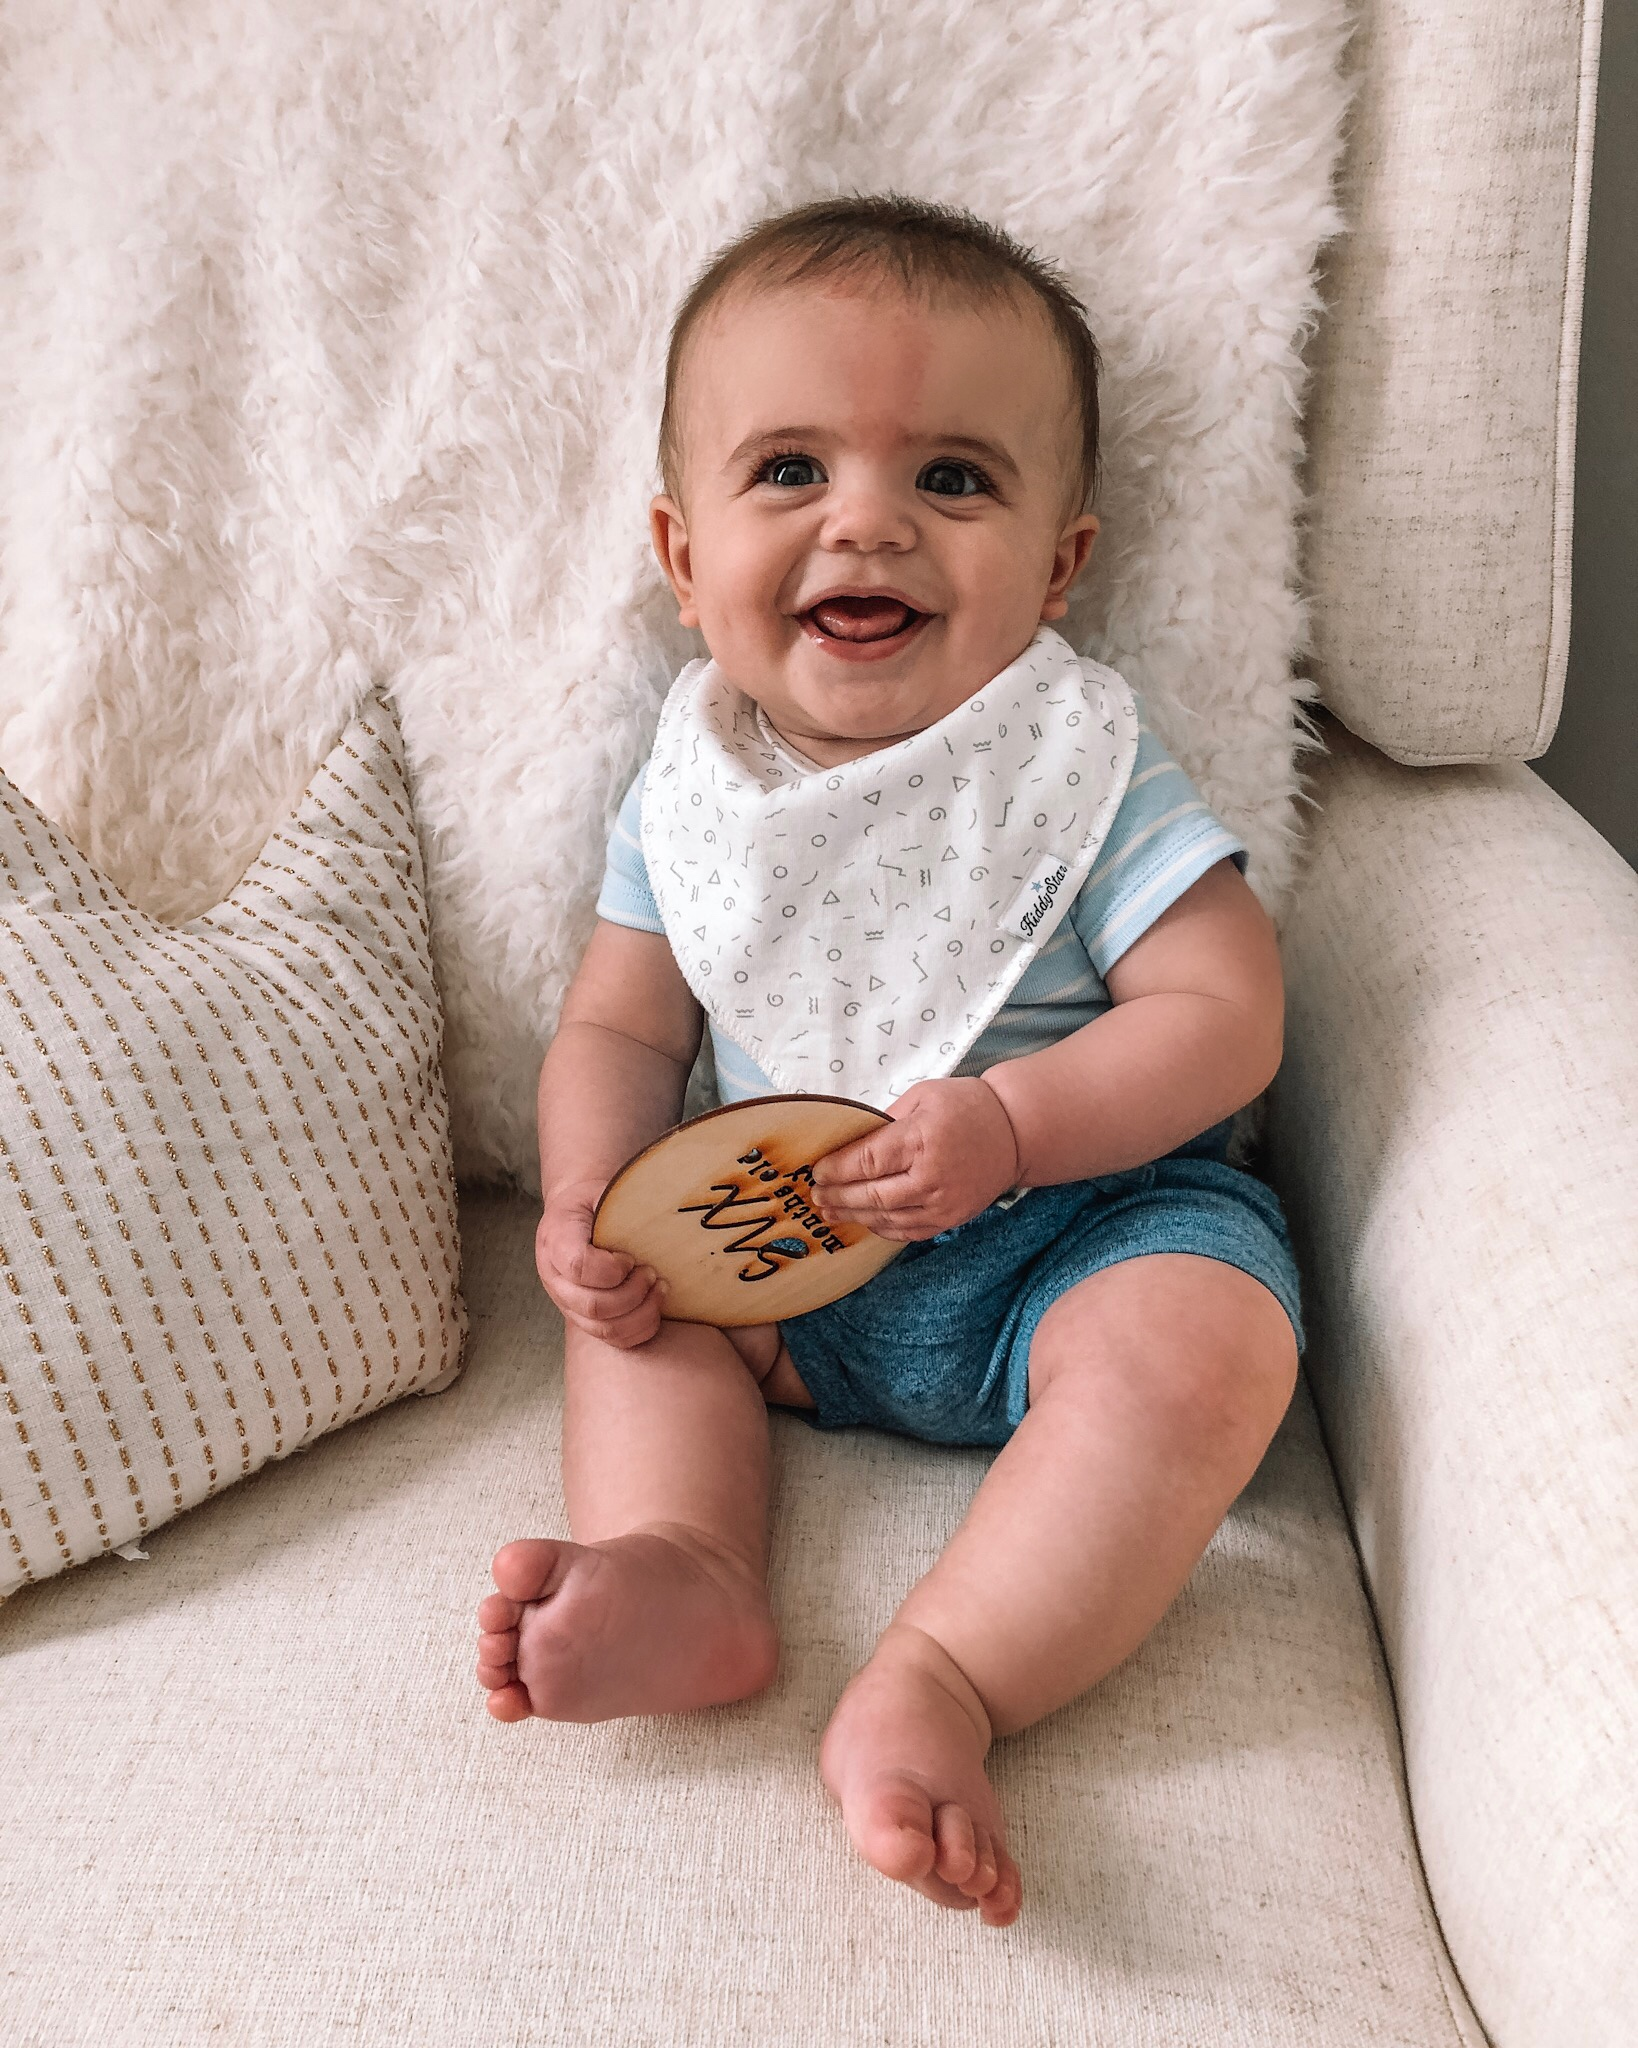 Keldon 6 month update and schedule, baby